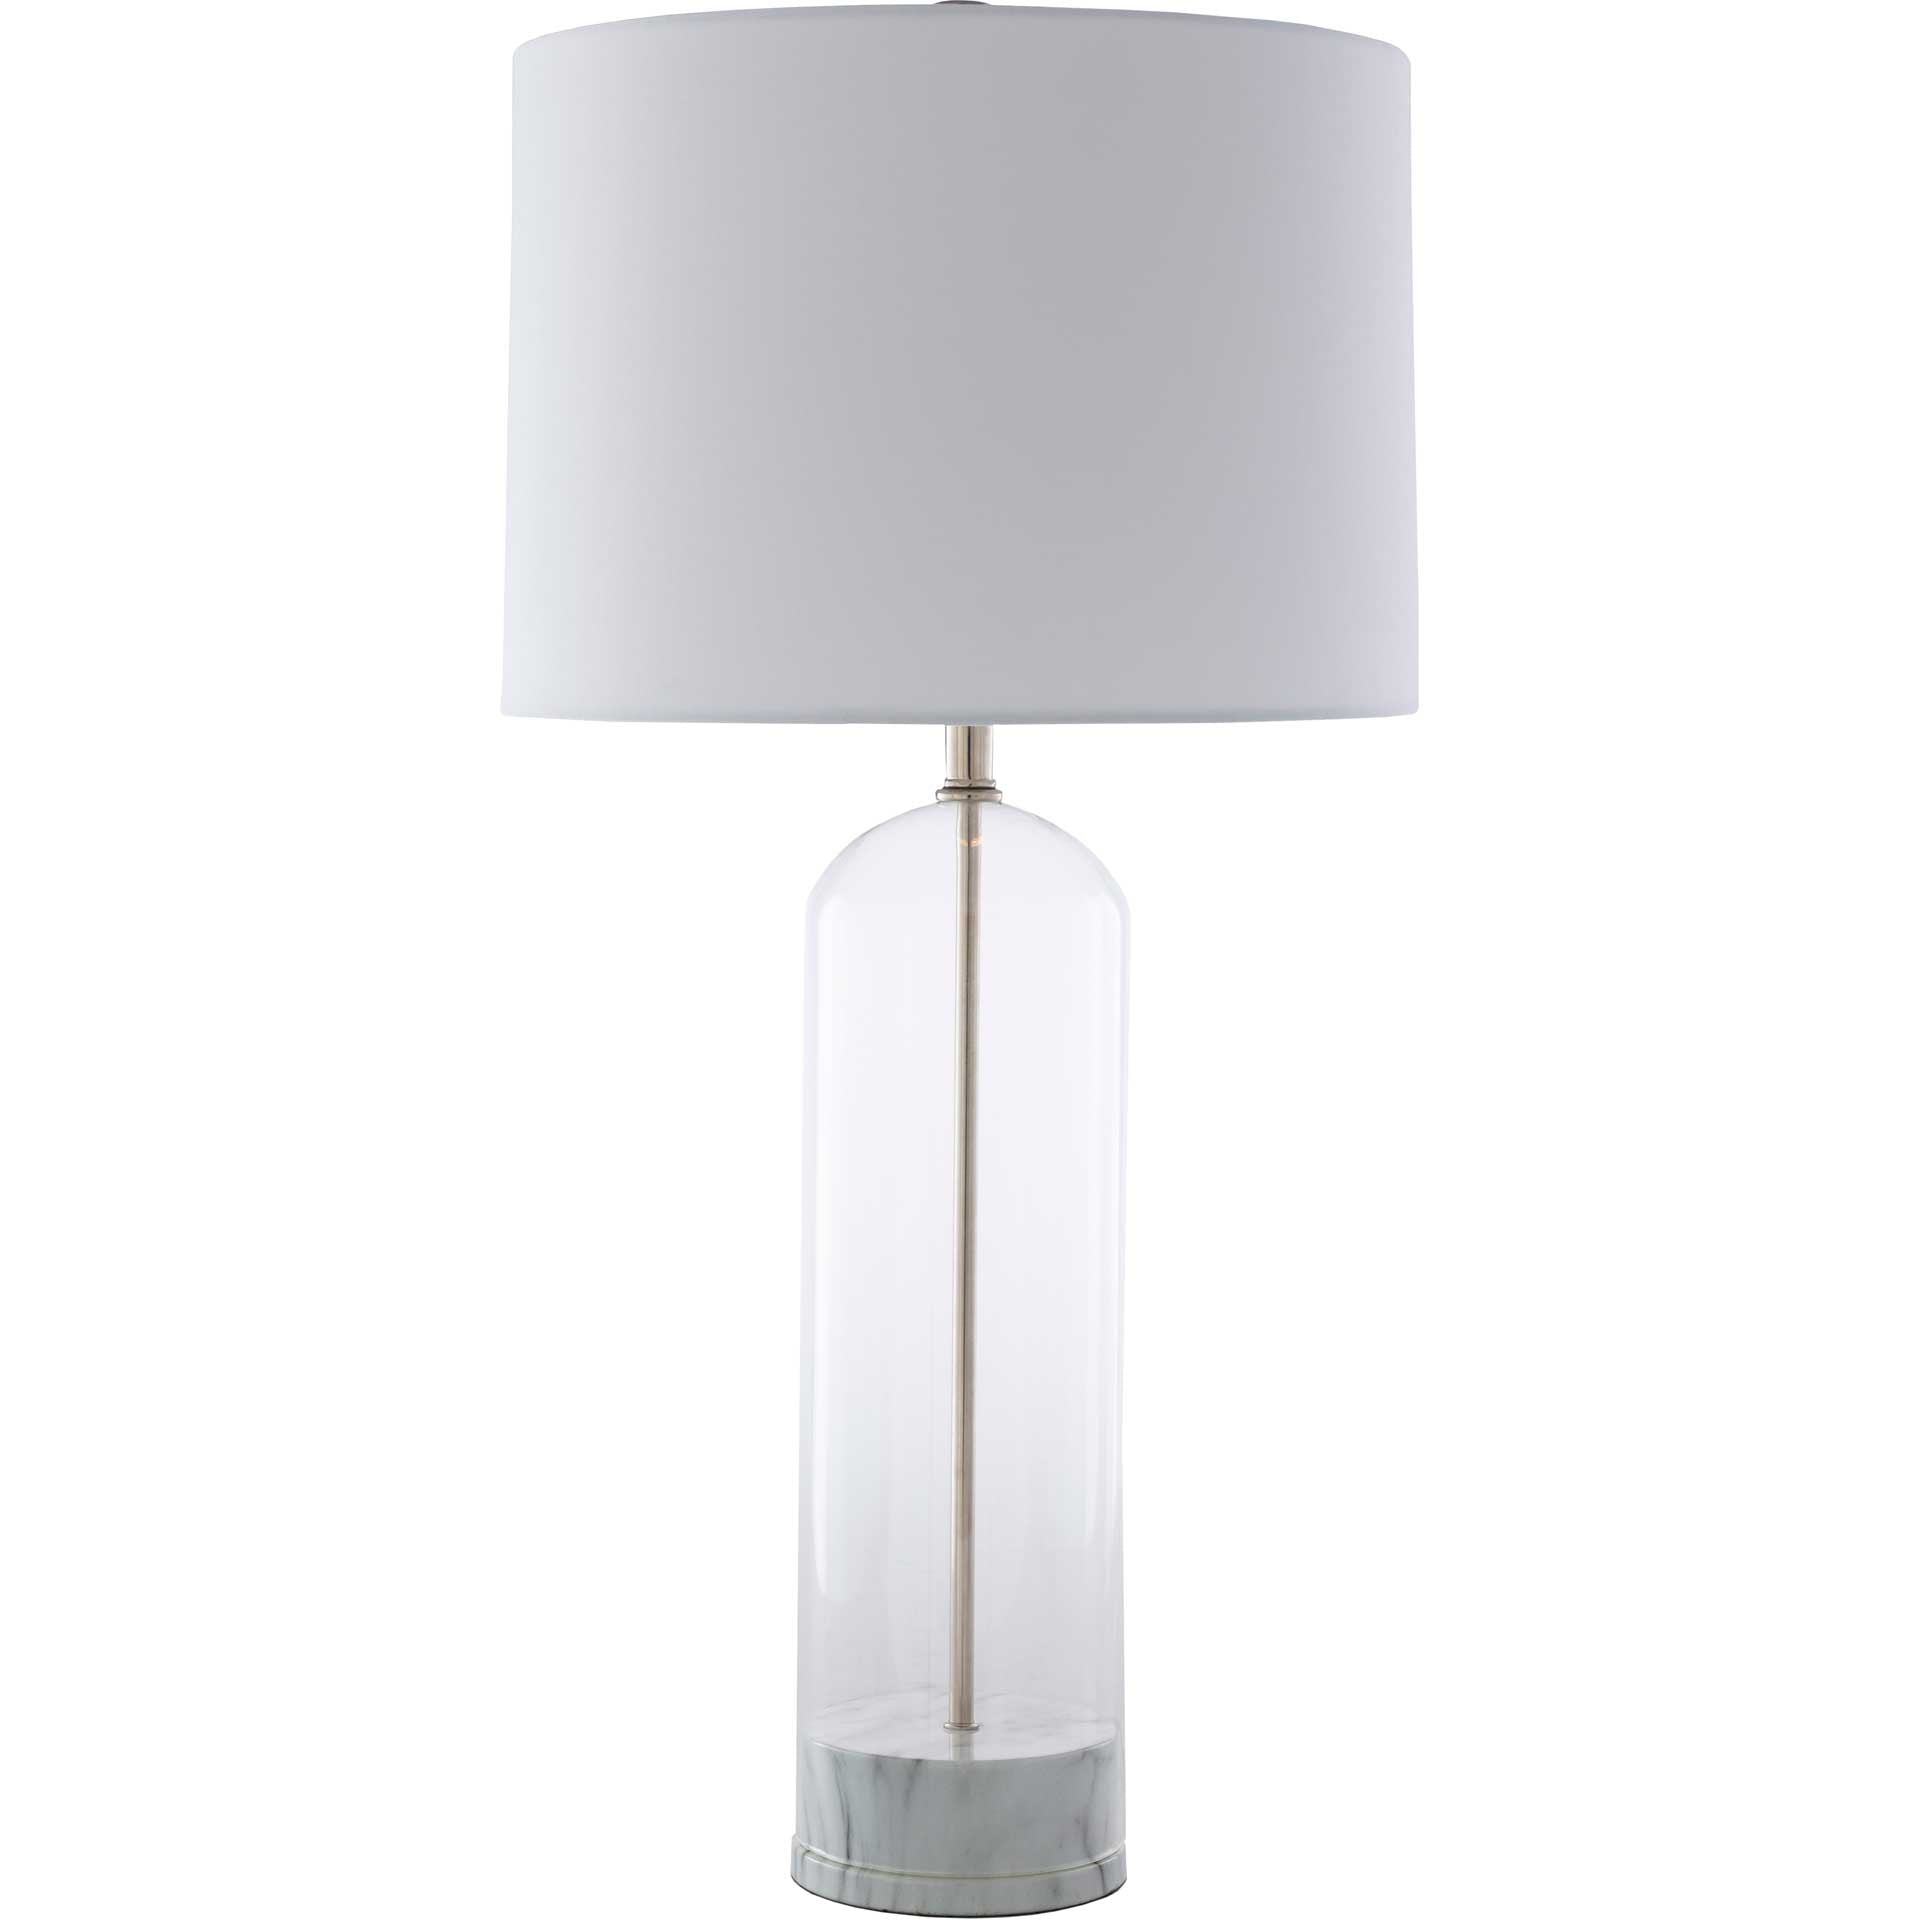 Carlos Table Lamp White/Light Gray